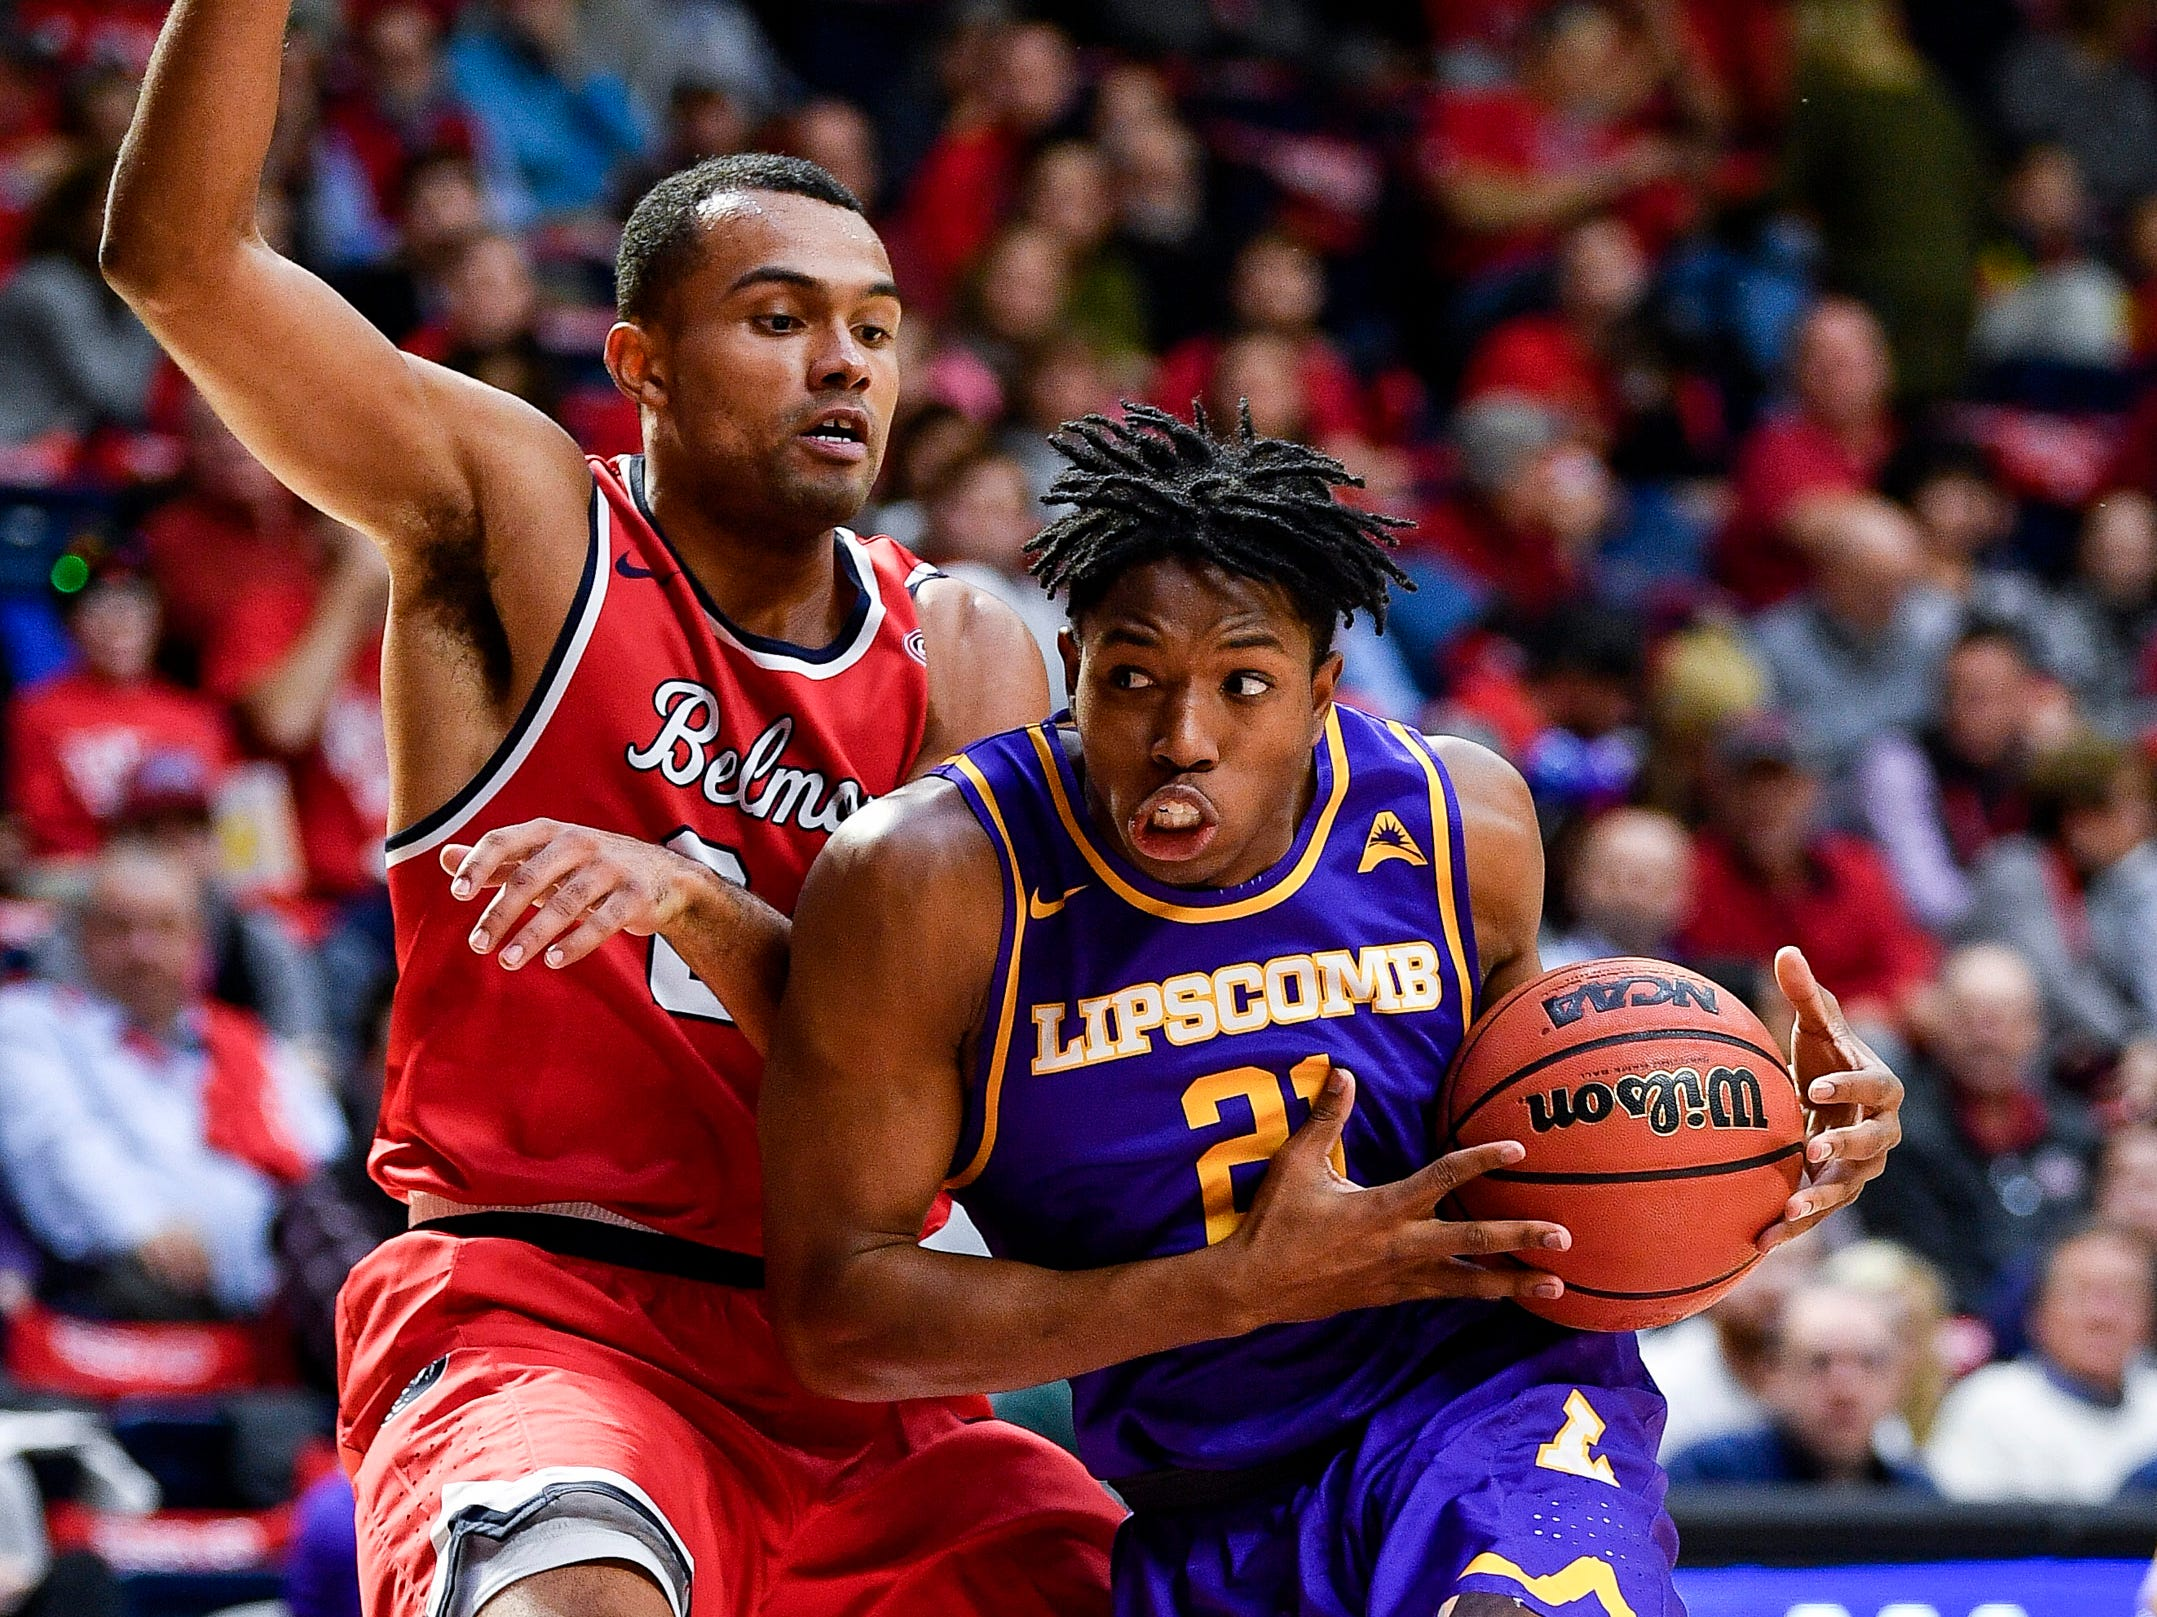 Belmont guard Michael Benkert (24) guards Lipscomb guard Kenny Cooper (21) during the second half at the Curb Event Center in Nashville, Tenn., Tuesday, Dec. 4, 2018.